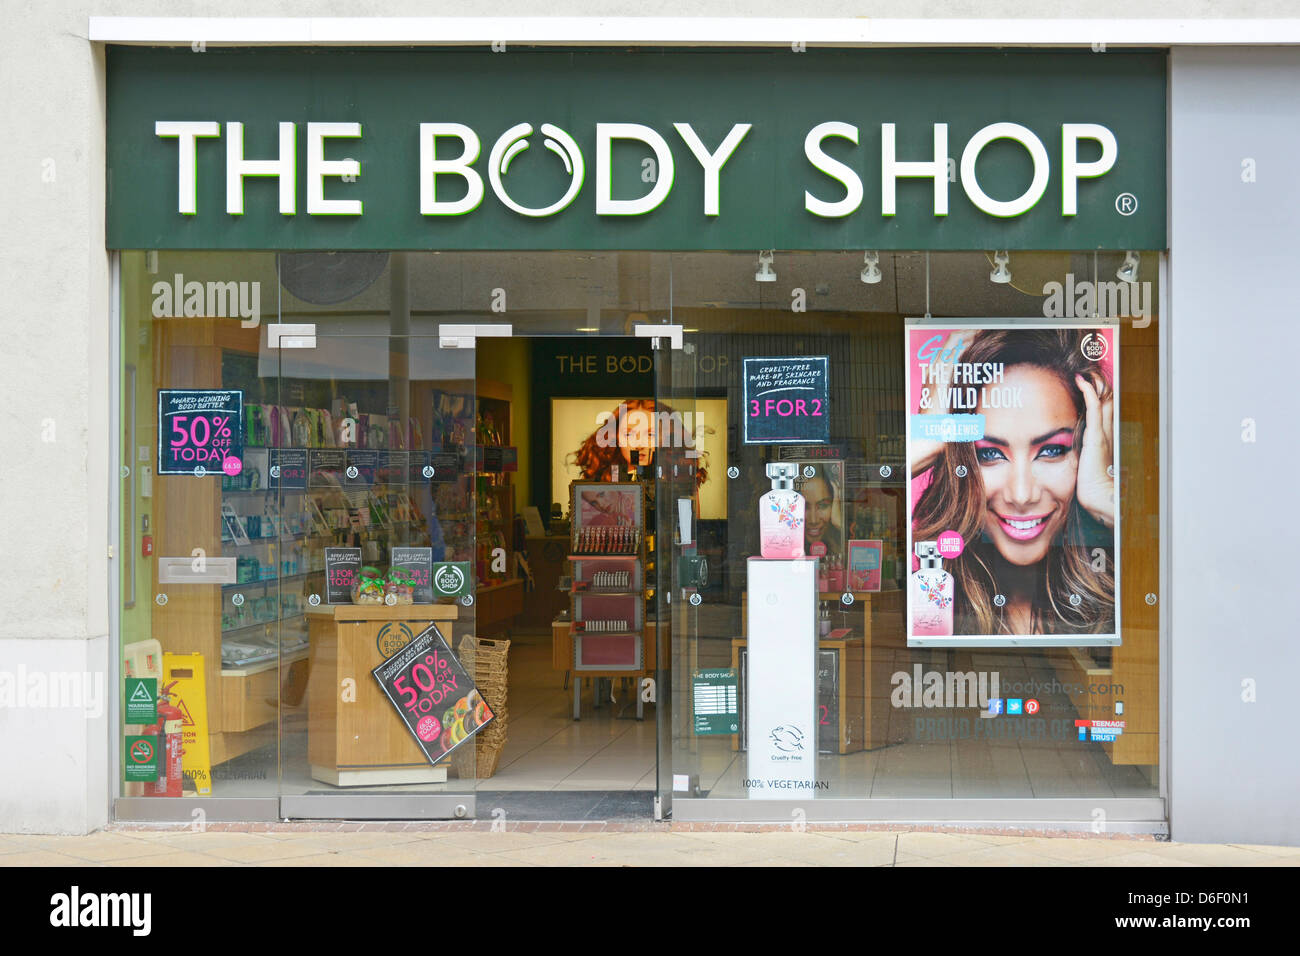 Shop front window display at Body Shop store - Stock Image